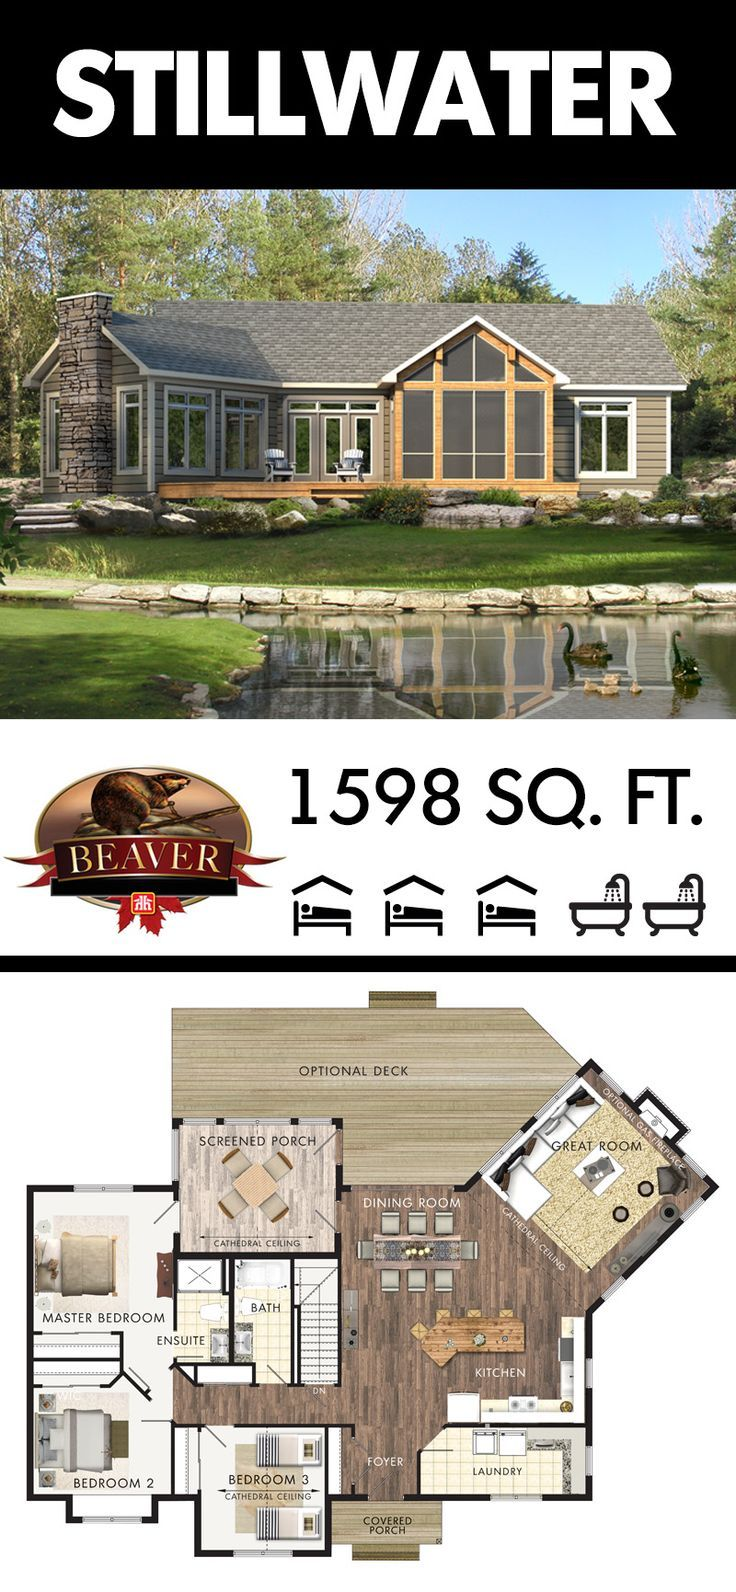 The Stillwater is a spacious #cottage design suitable for year-round living. All of the essentials are included for an endless stay. #BeaverHomesAndCottages